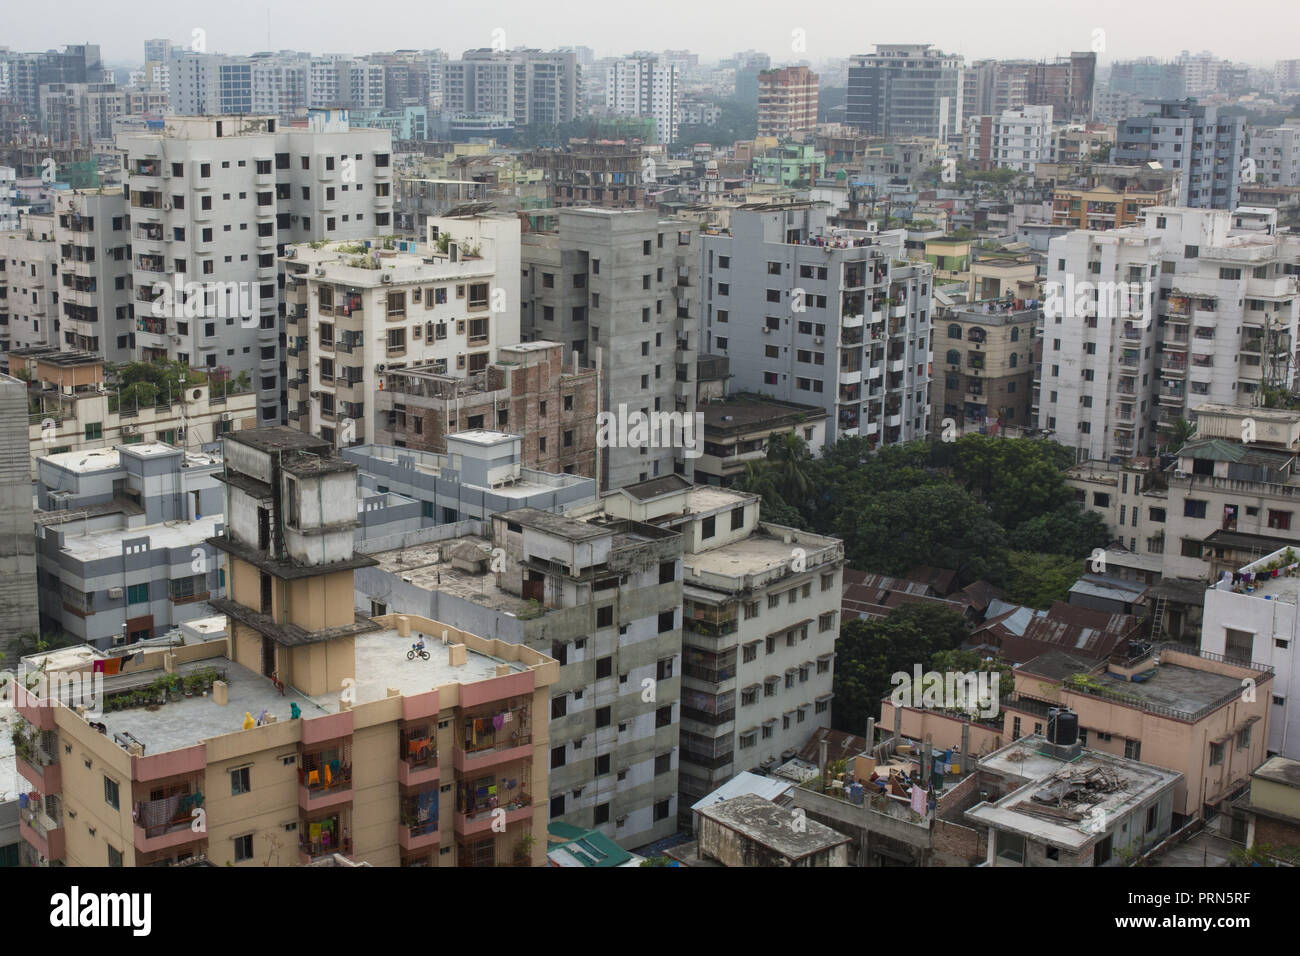 Dhaka, Bangladesh. 3rd Oct, 2018. DHAKA, BANGLADESH - OCTOBER 03 : A child riding on bicycle at the rooftop of a building in Dhaka, Bangladesh on October 03, 2018.Dhaka is the main hub of economic activity in the country Bangladesh, generating a fifth of national GDP and nearly half of all formal jobs. Credit: Zakir Hossain Chowdhury/ZUMA Wire/Alamy Live News - Stock Image